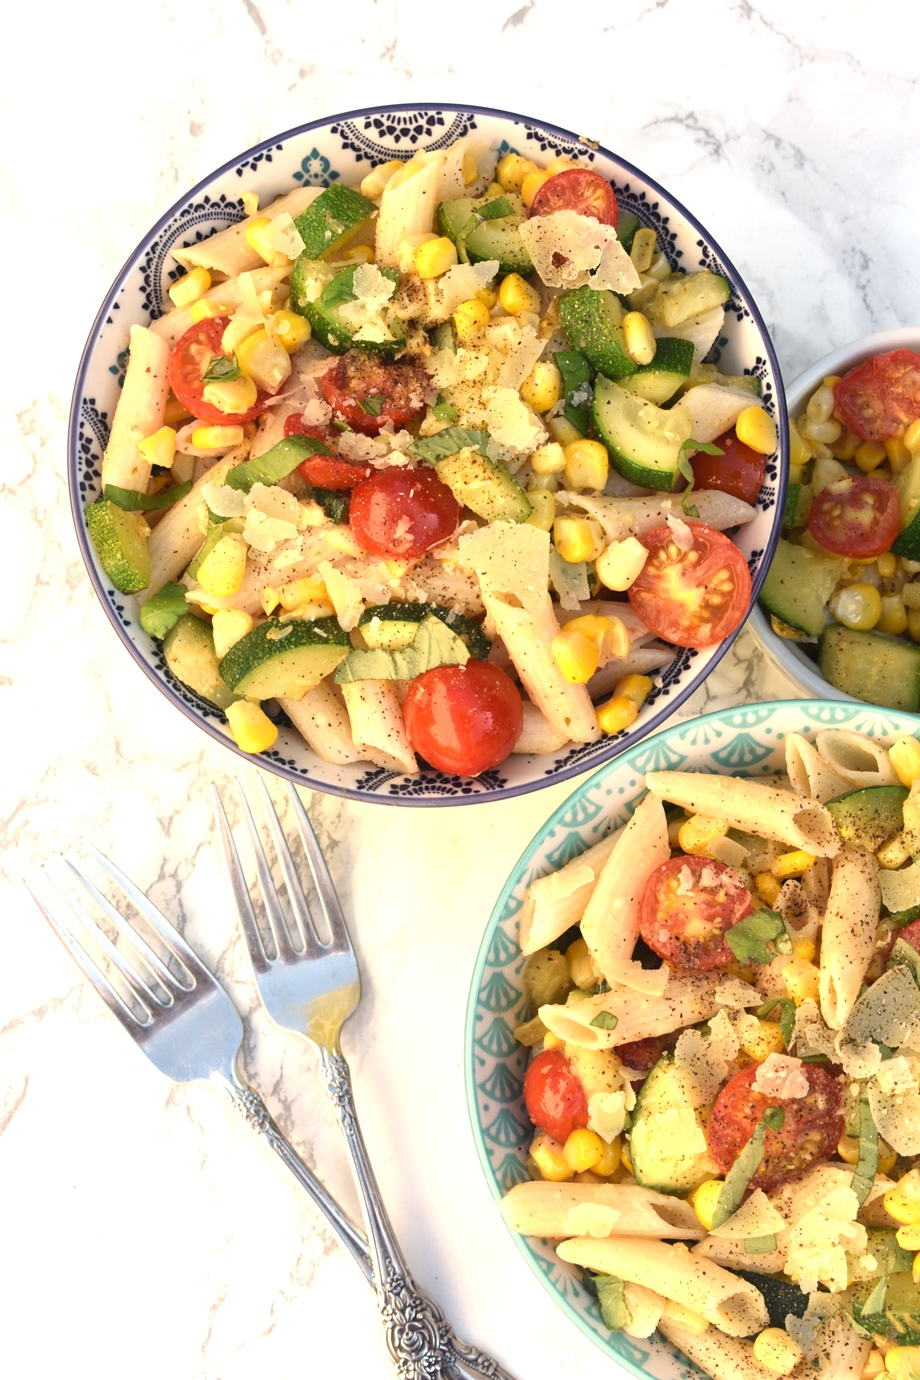 Tomato, Zucchini and Corn Pasta Salad